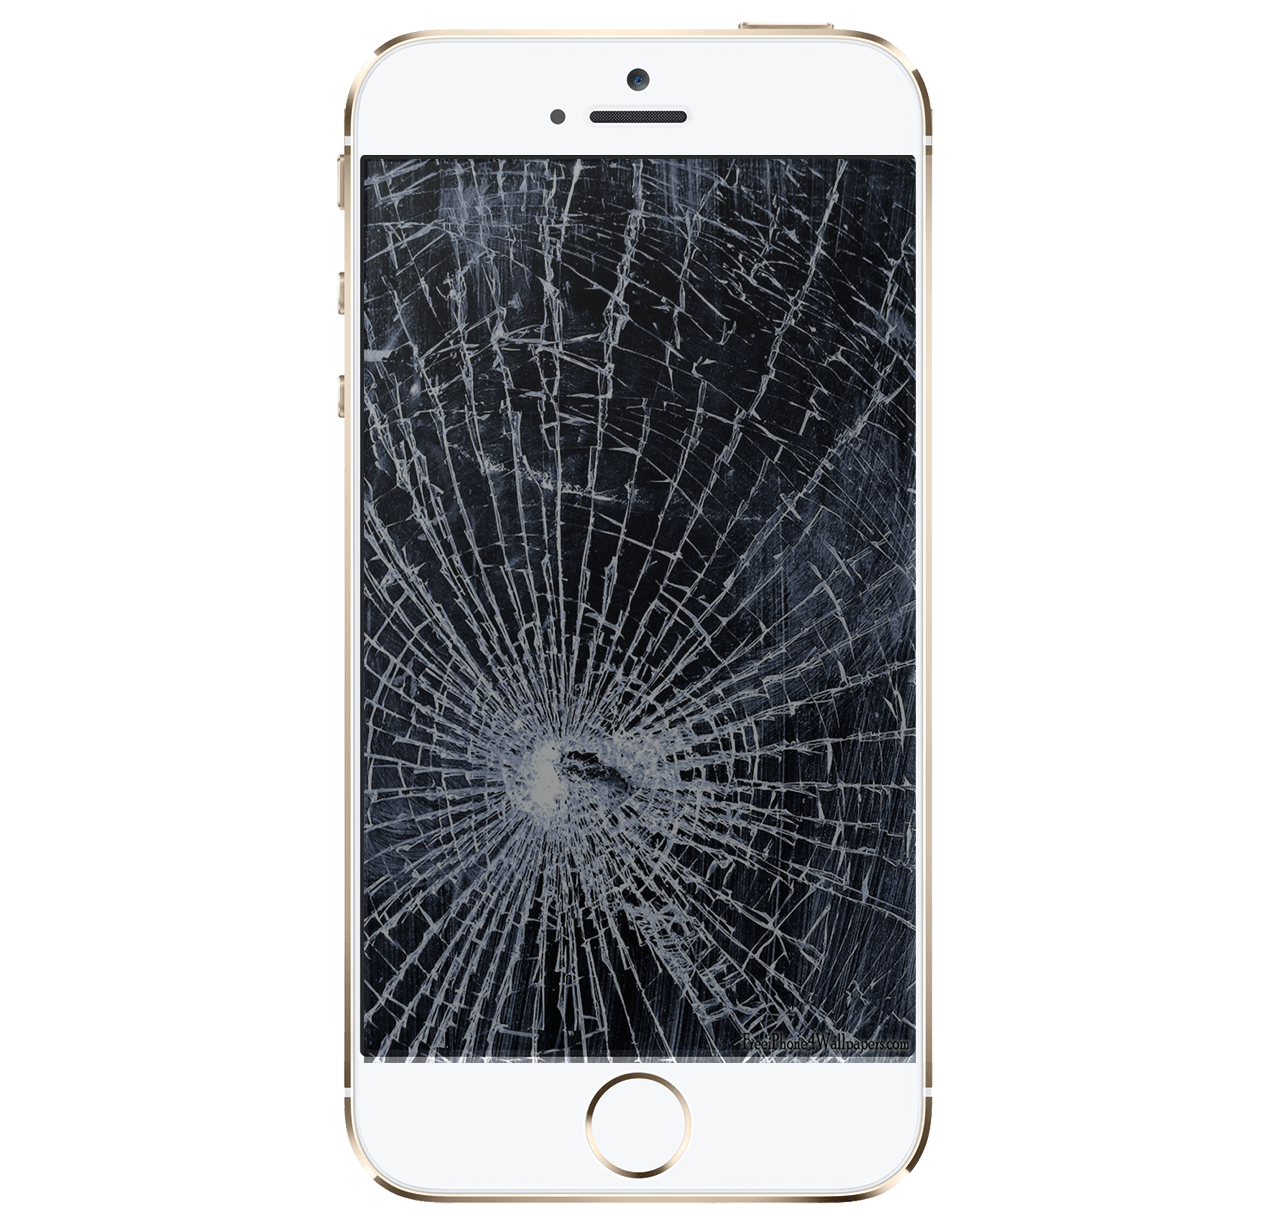 Iphone Ecran Casse Png Transparents Stickpng